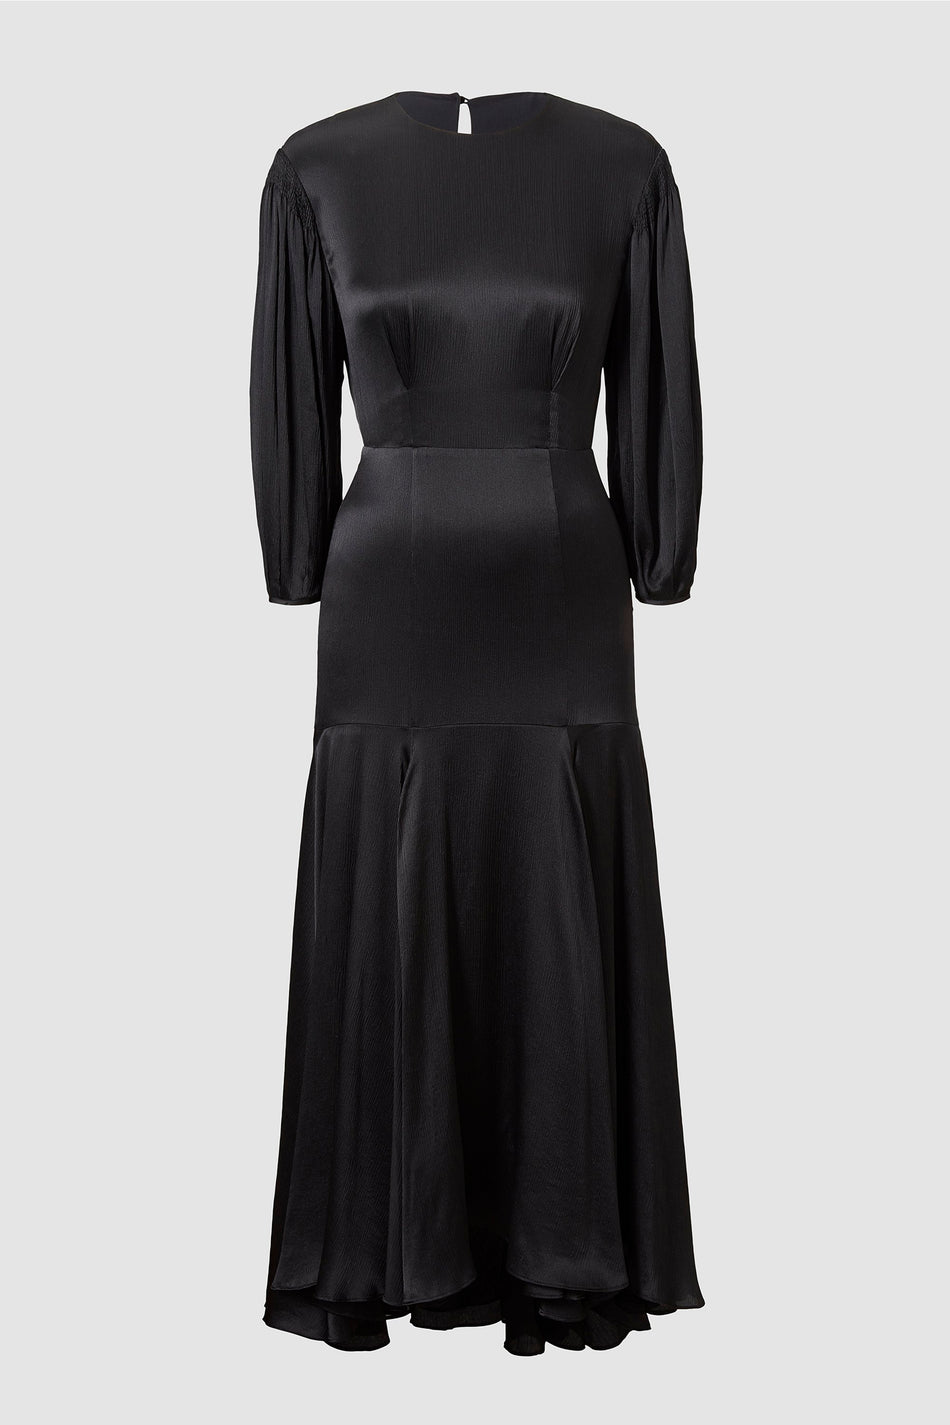 Tove Sabine Silk Dress Black